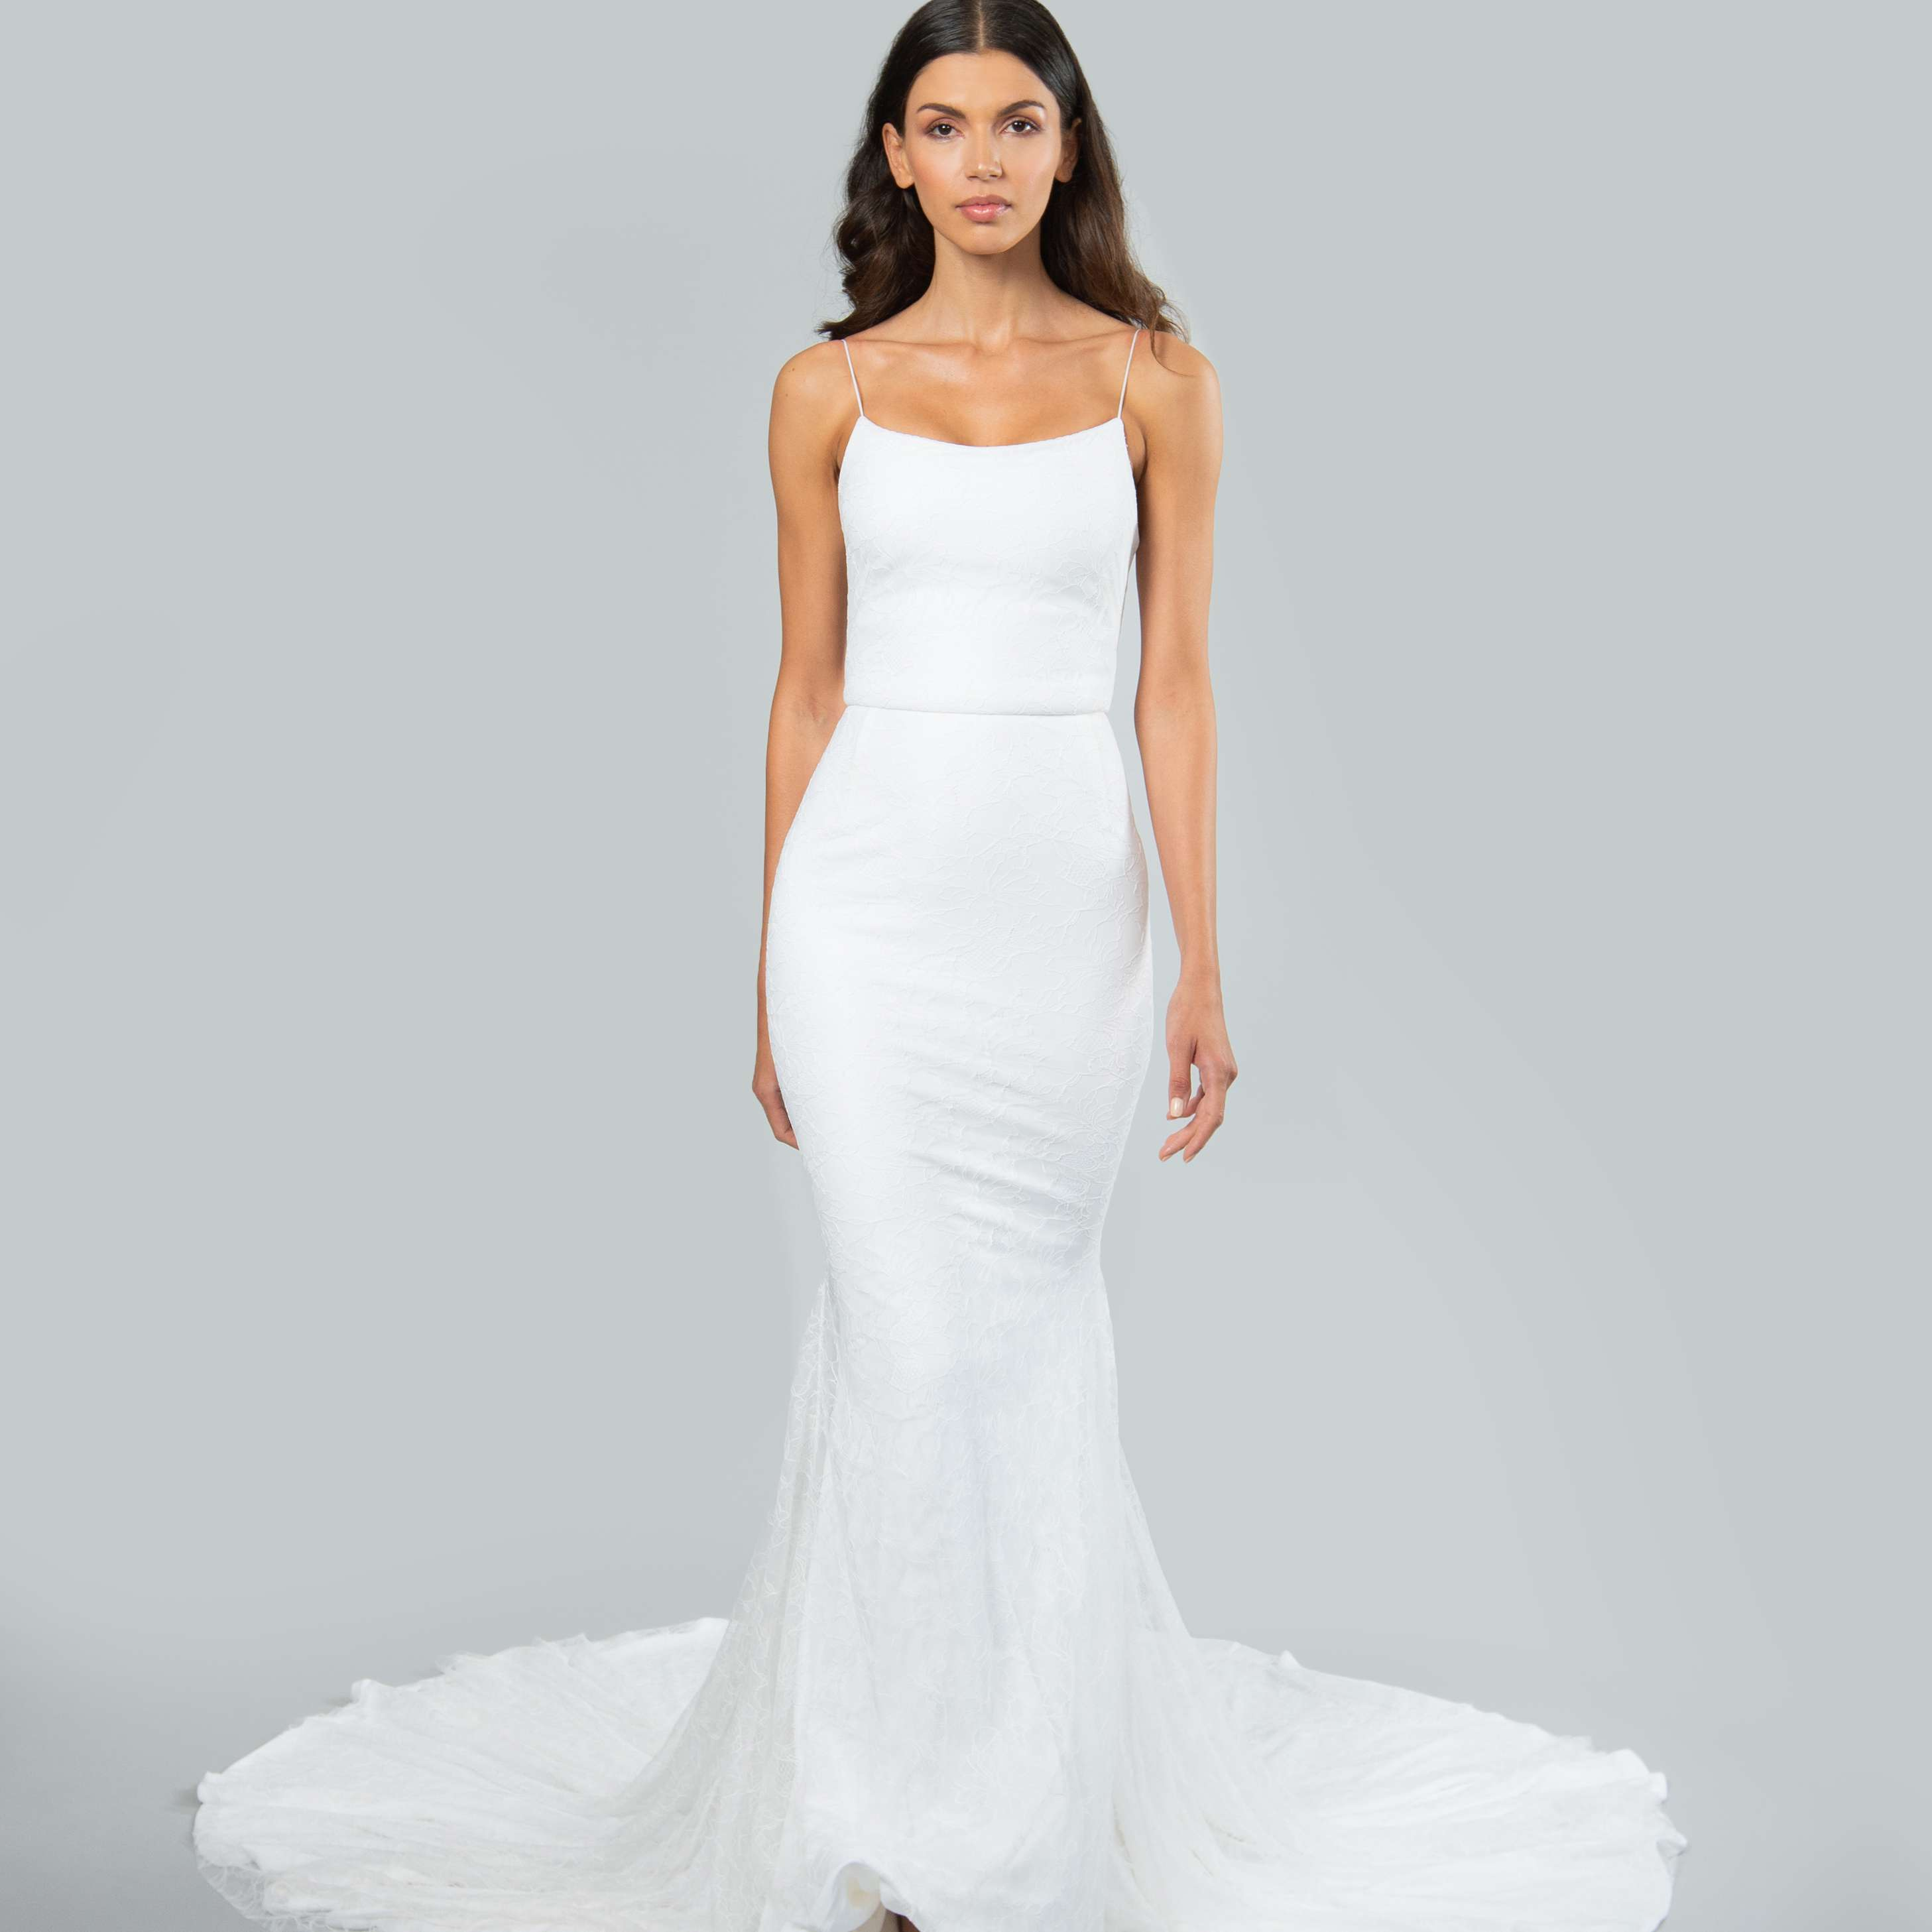 Model in fit-and-flare spaghetti strap wedding dress